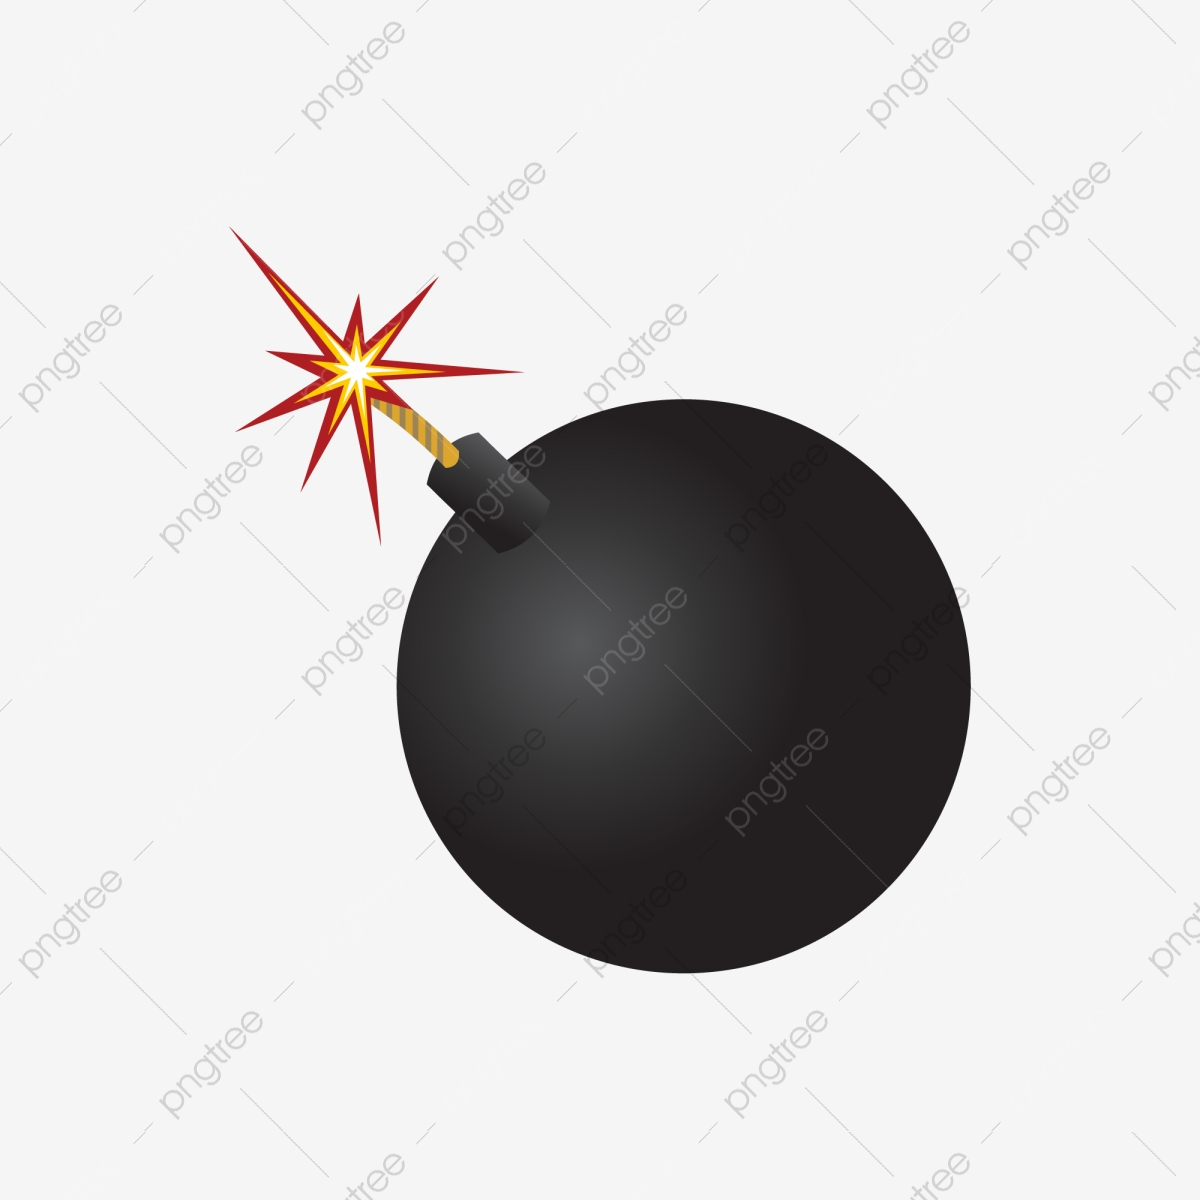 bomb png images vector and psd files free download on pngtree https pngtree com freepng cartoon black bomb illustration 4737604 html